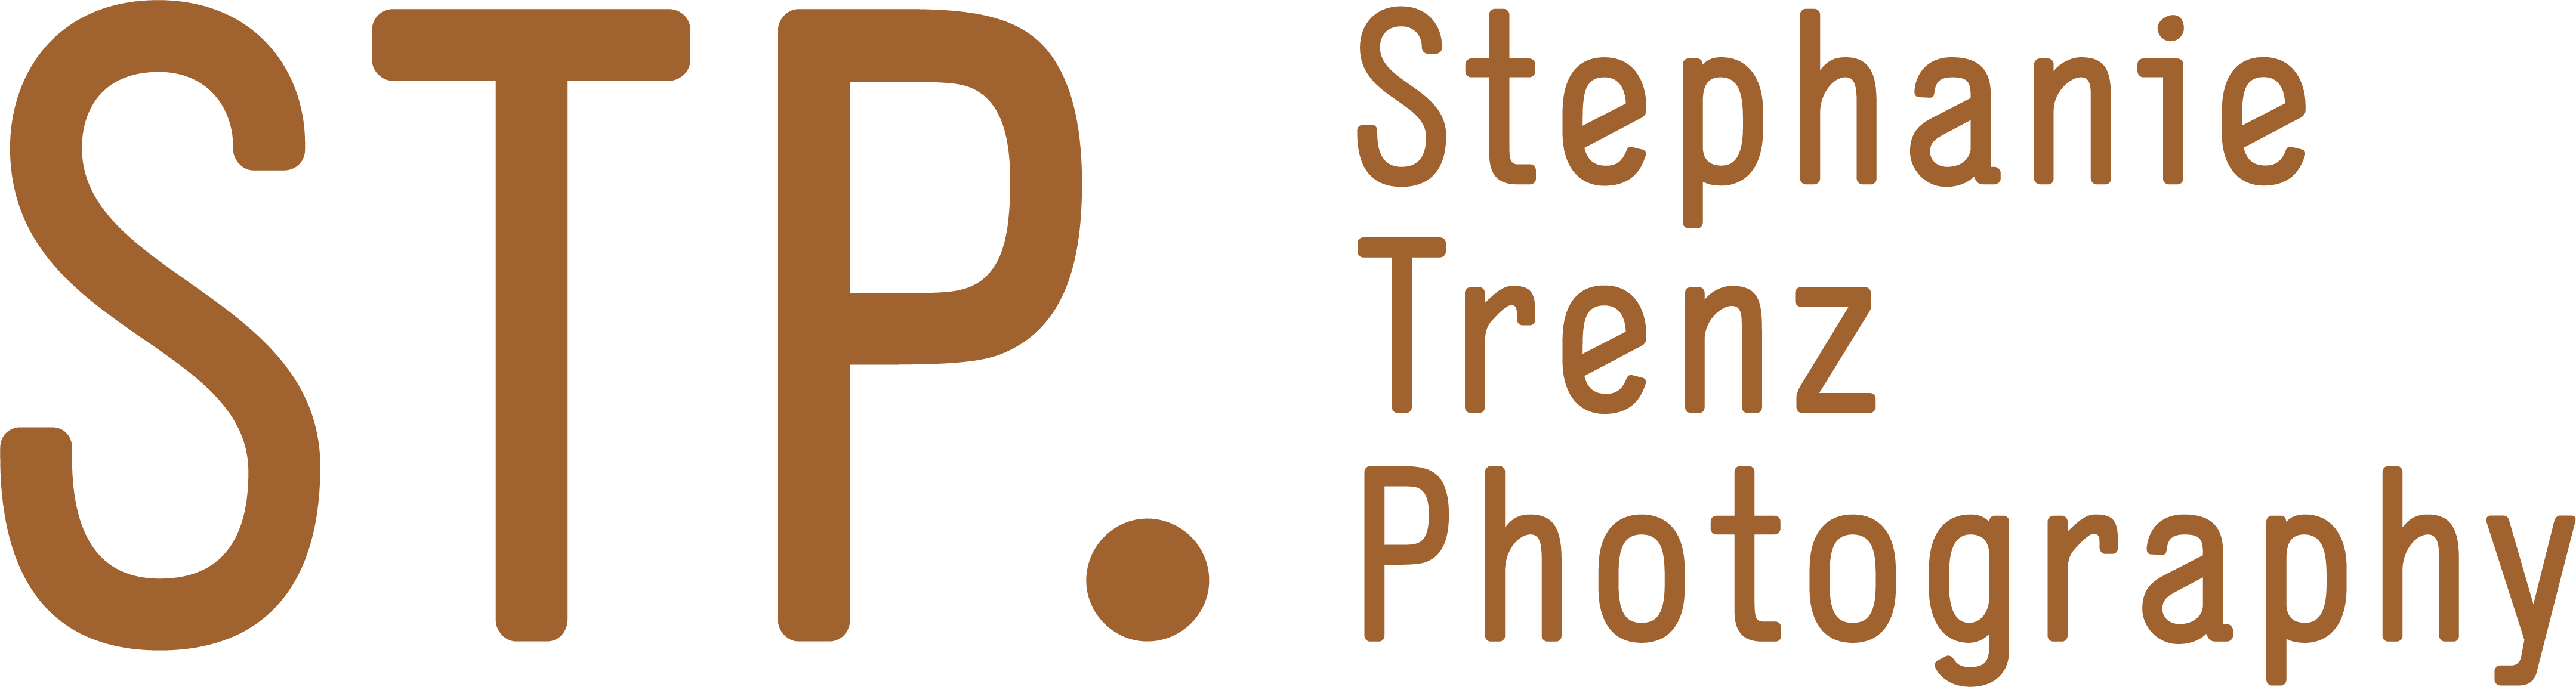 Stephanie Trenz Photography